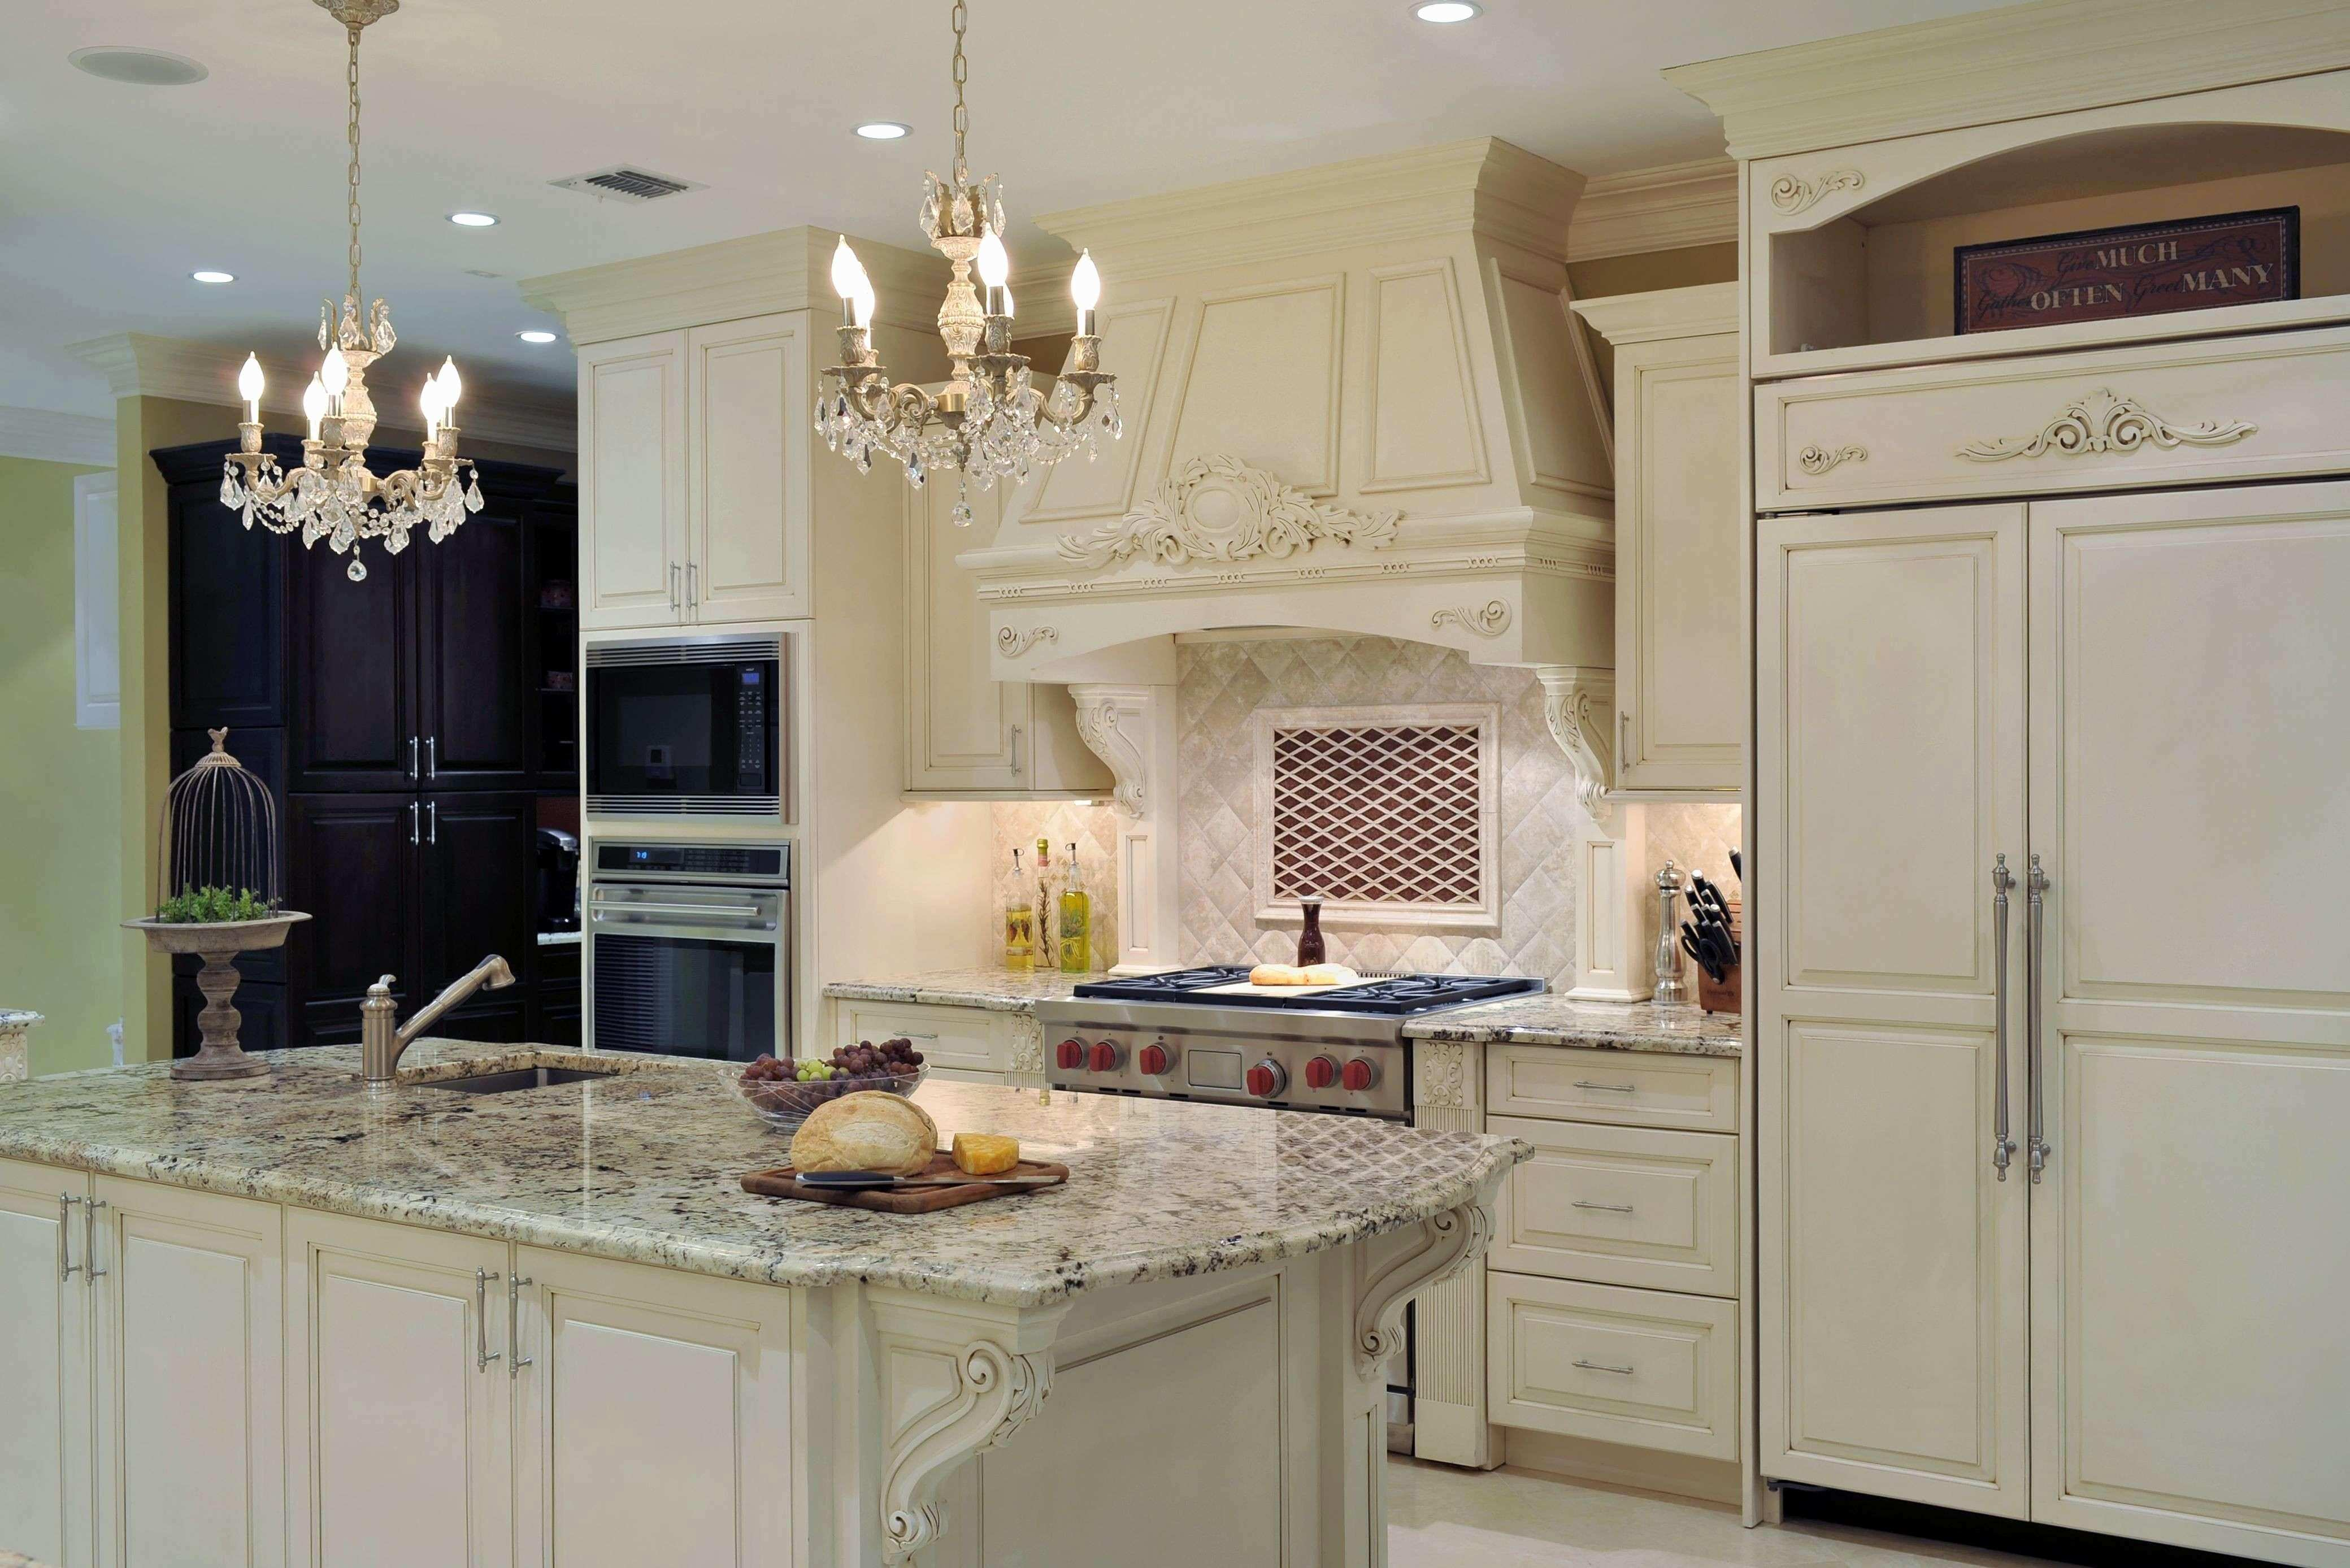 How to Decorate Kitchen Walls Beautiful Wall Decals for Bedroom